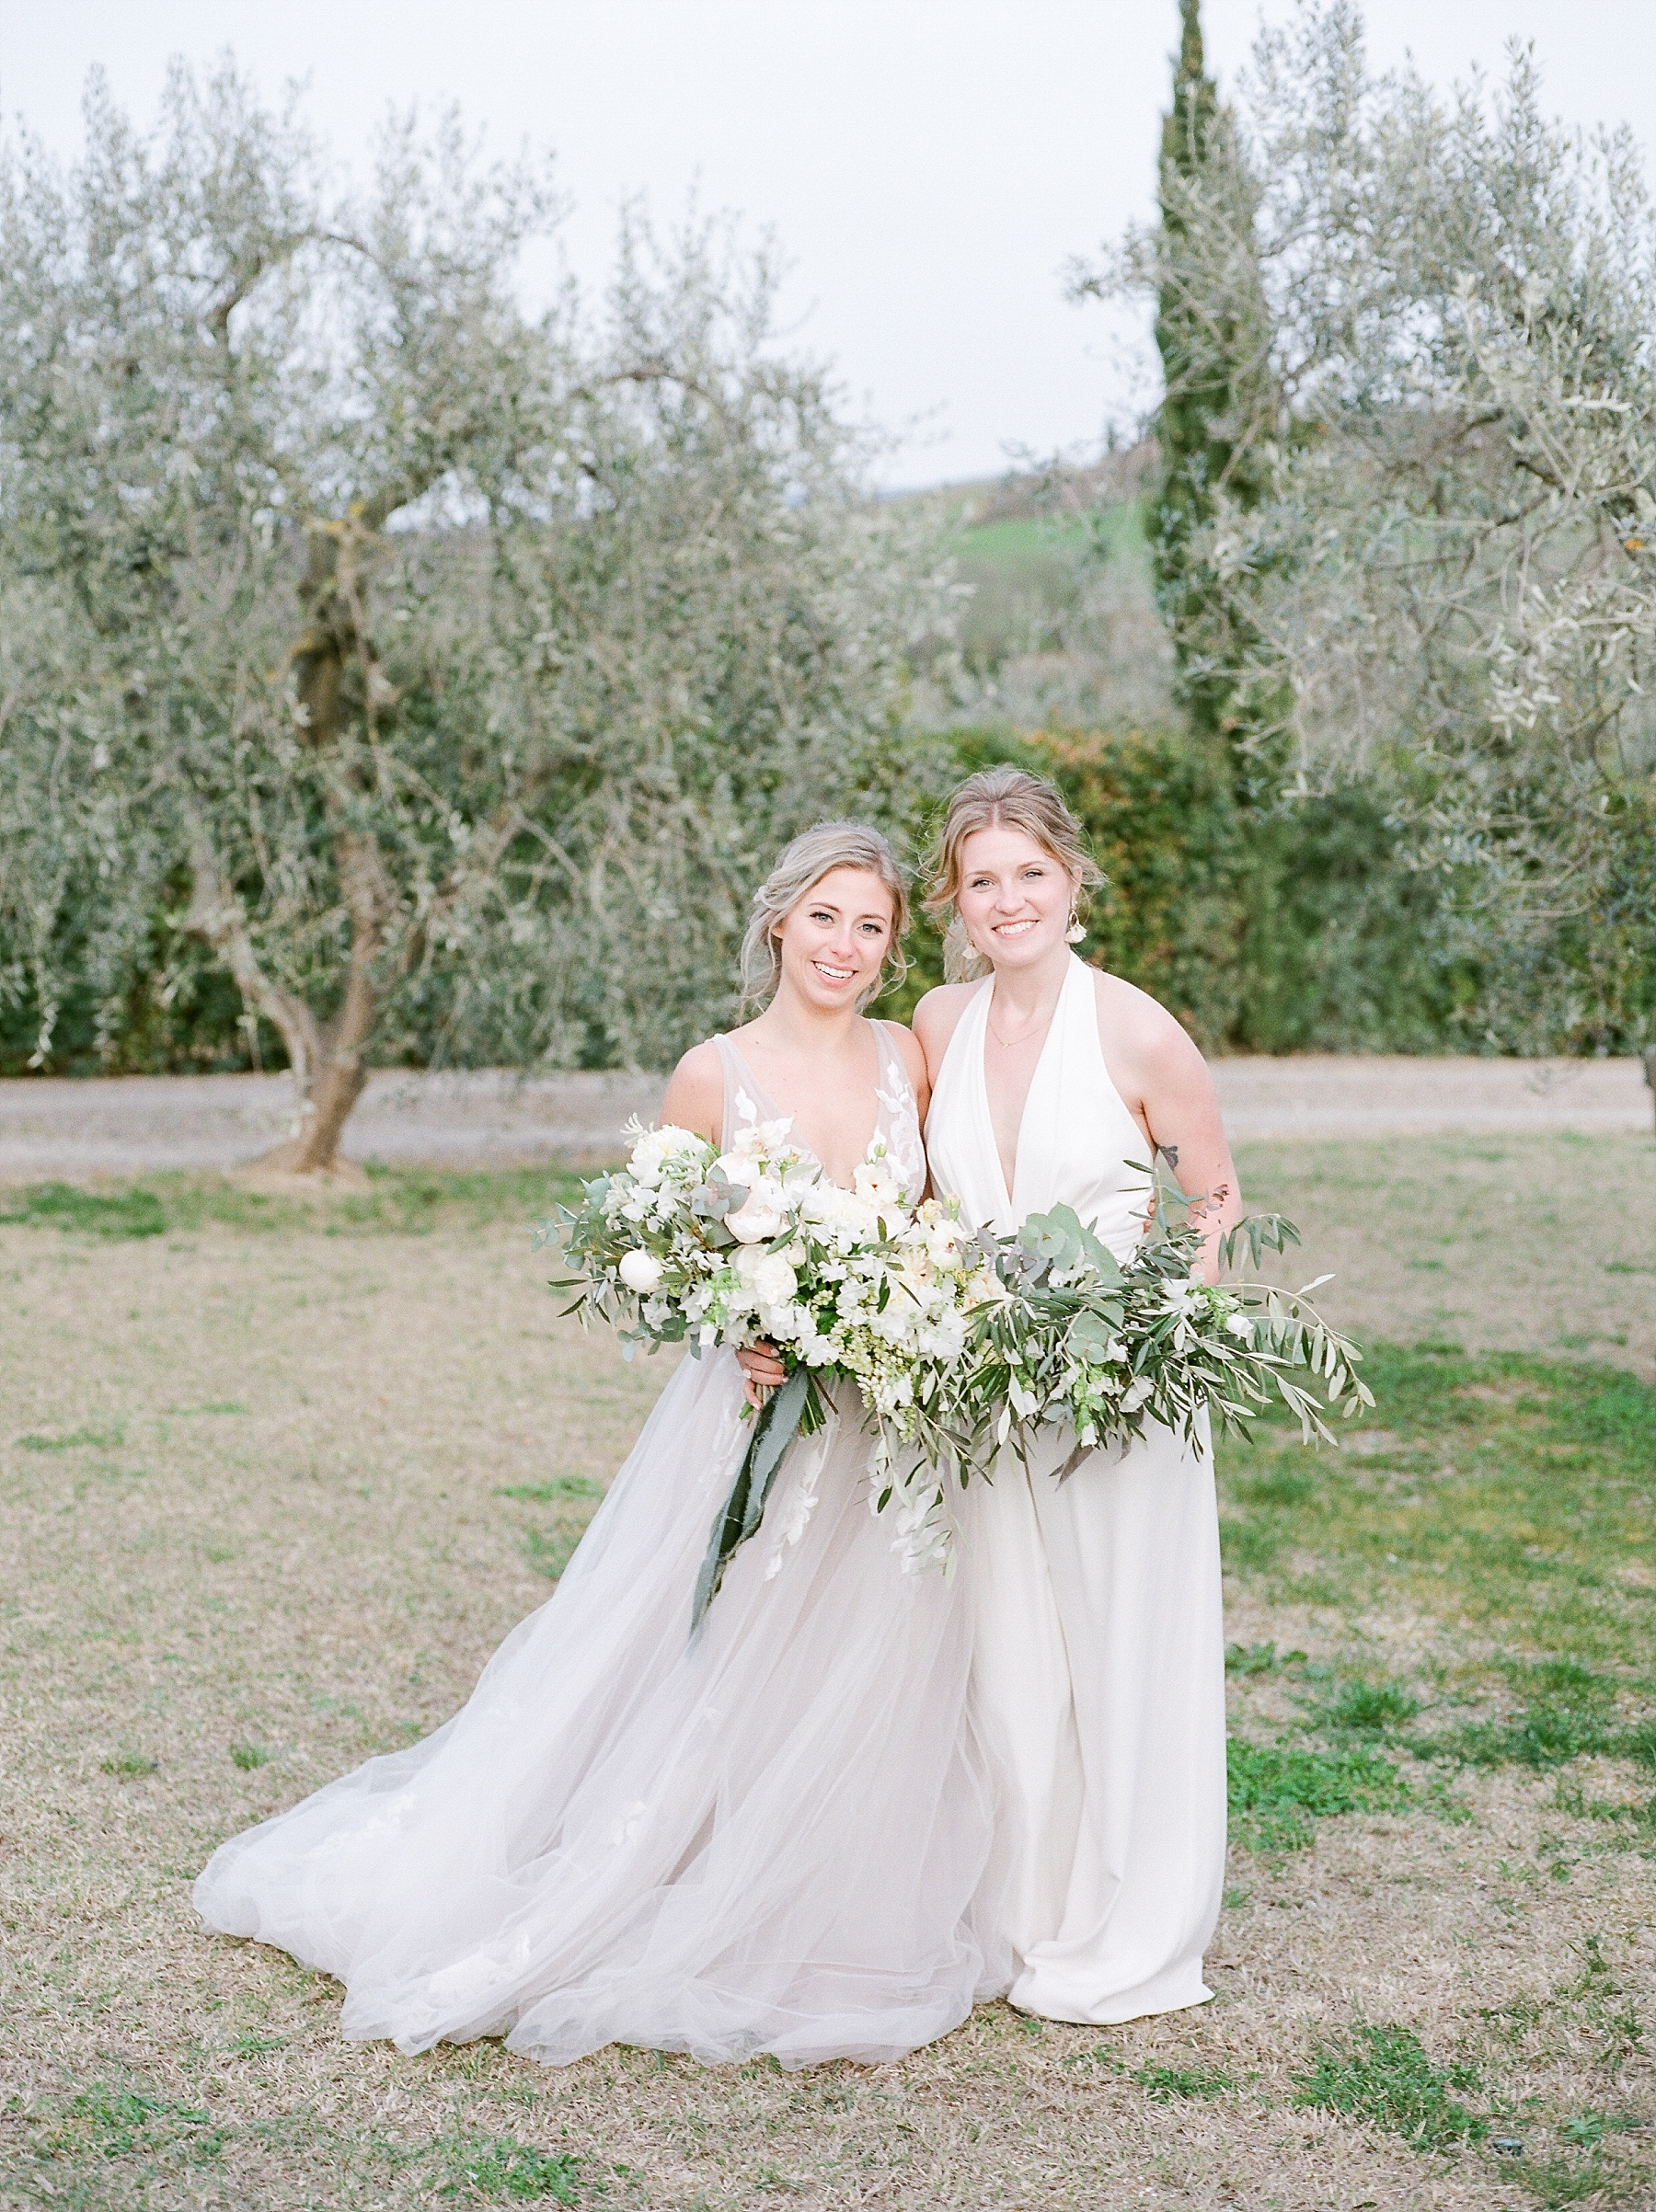 All White Destination Wedding in the Hills of Tuscany Italy at Estate Borgo Petrognano by Kelsi Kliethermes Photography_0052.jpg